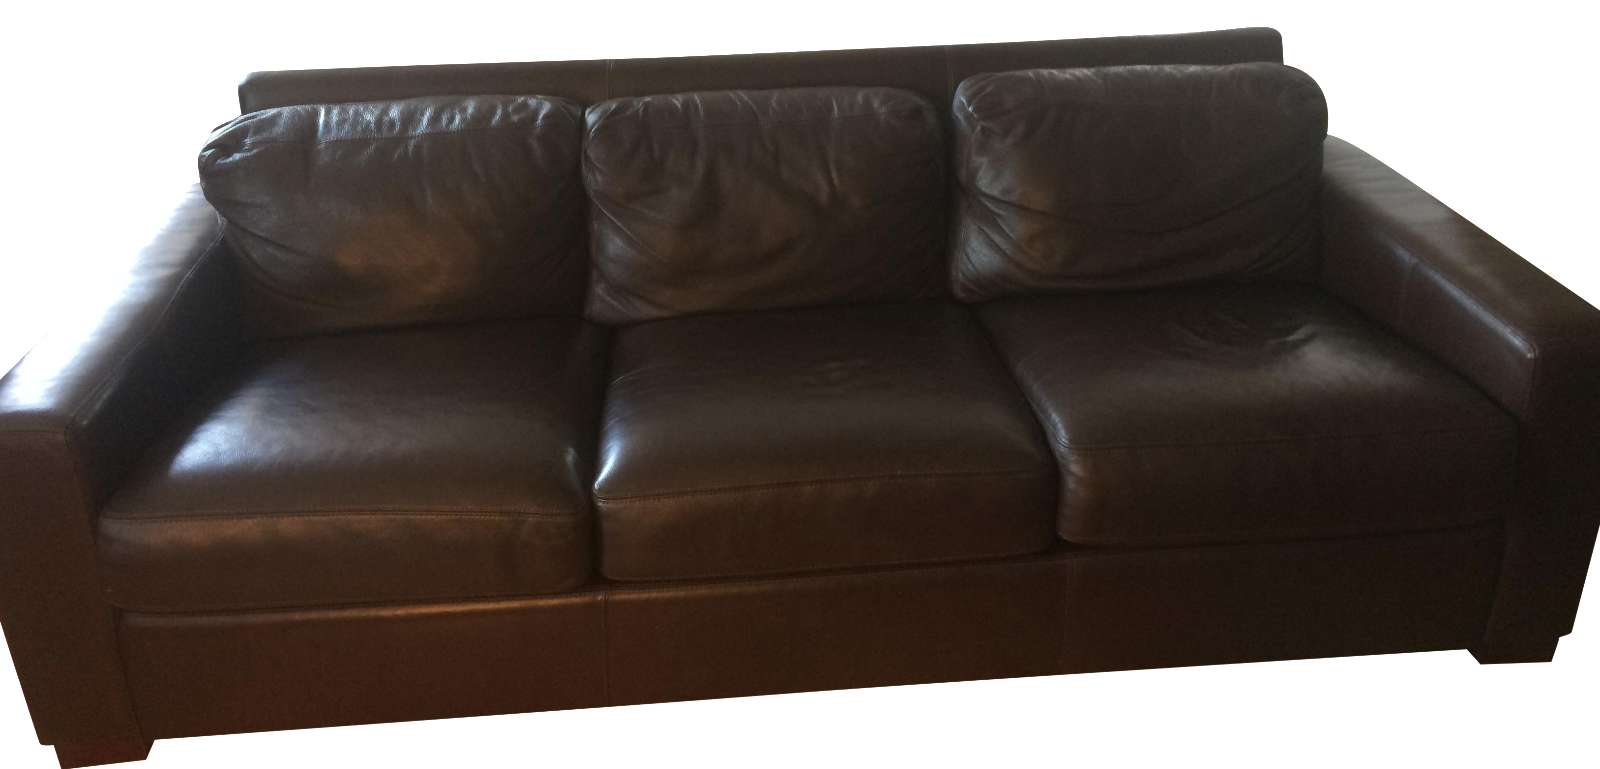 Sofa bed design within reach - Image Of Design Within Reach 84 Portola Leather Sofa